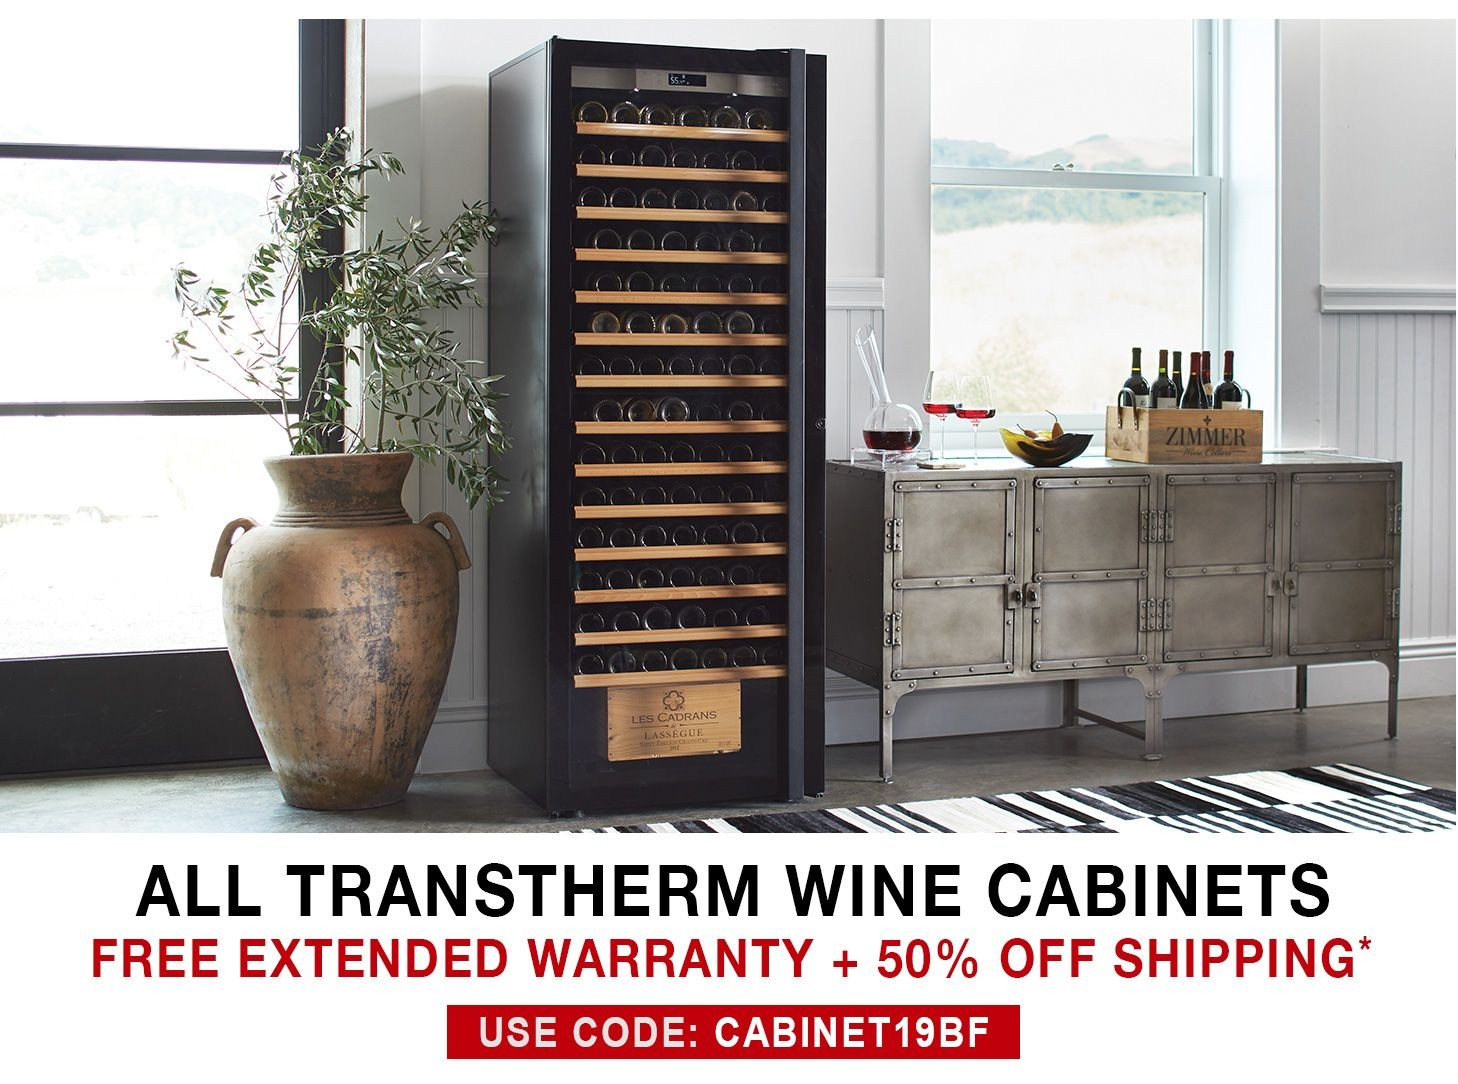 Transtherm Wine Cabinets - Free 3 Year Extended Warranty + 50% Off Shipping - Use Code CABINET19BF